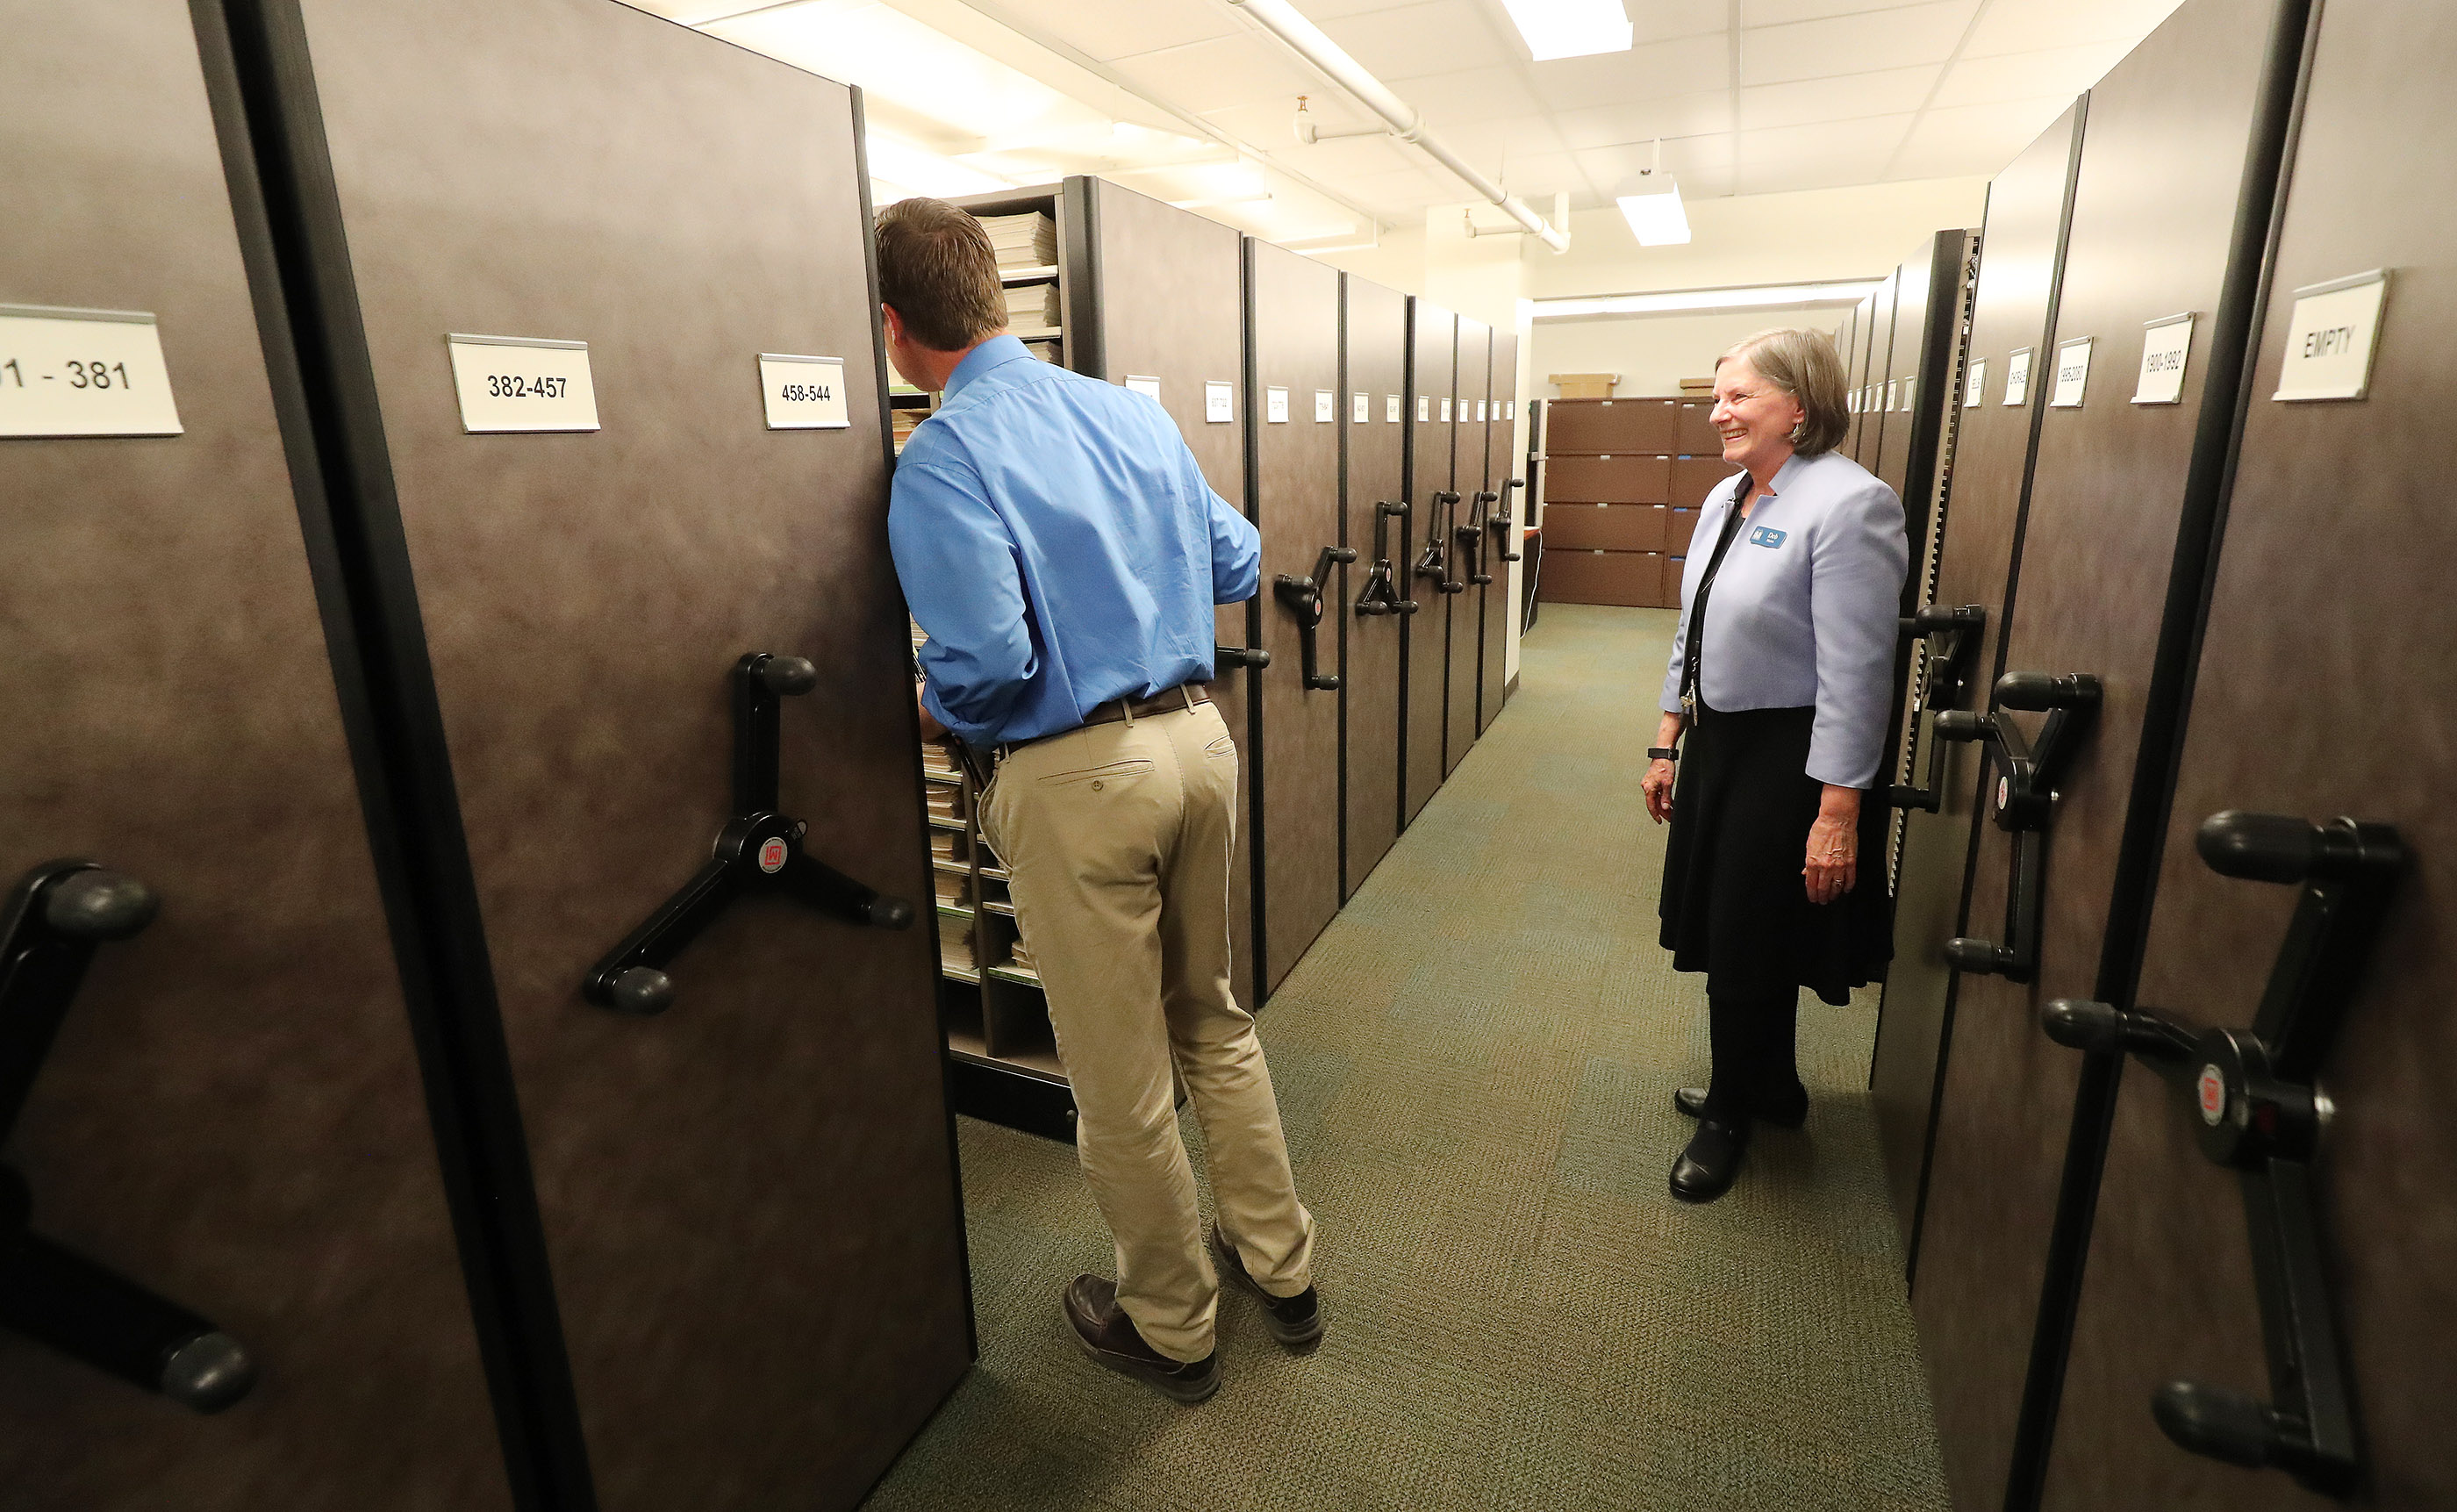 Daniel Wilson gets a tour of the vast music library by Deb Martin in preparation to sing with The Tabernacle Choir at Temple Square during a rehearsal in Salt Lake City on Thursday, April 11, 2019. Four people were selected through social media to sing with the choir.